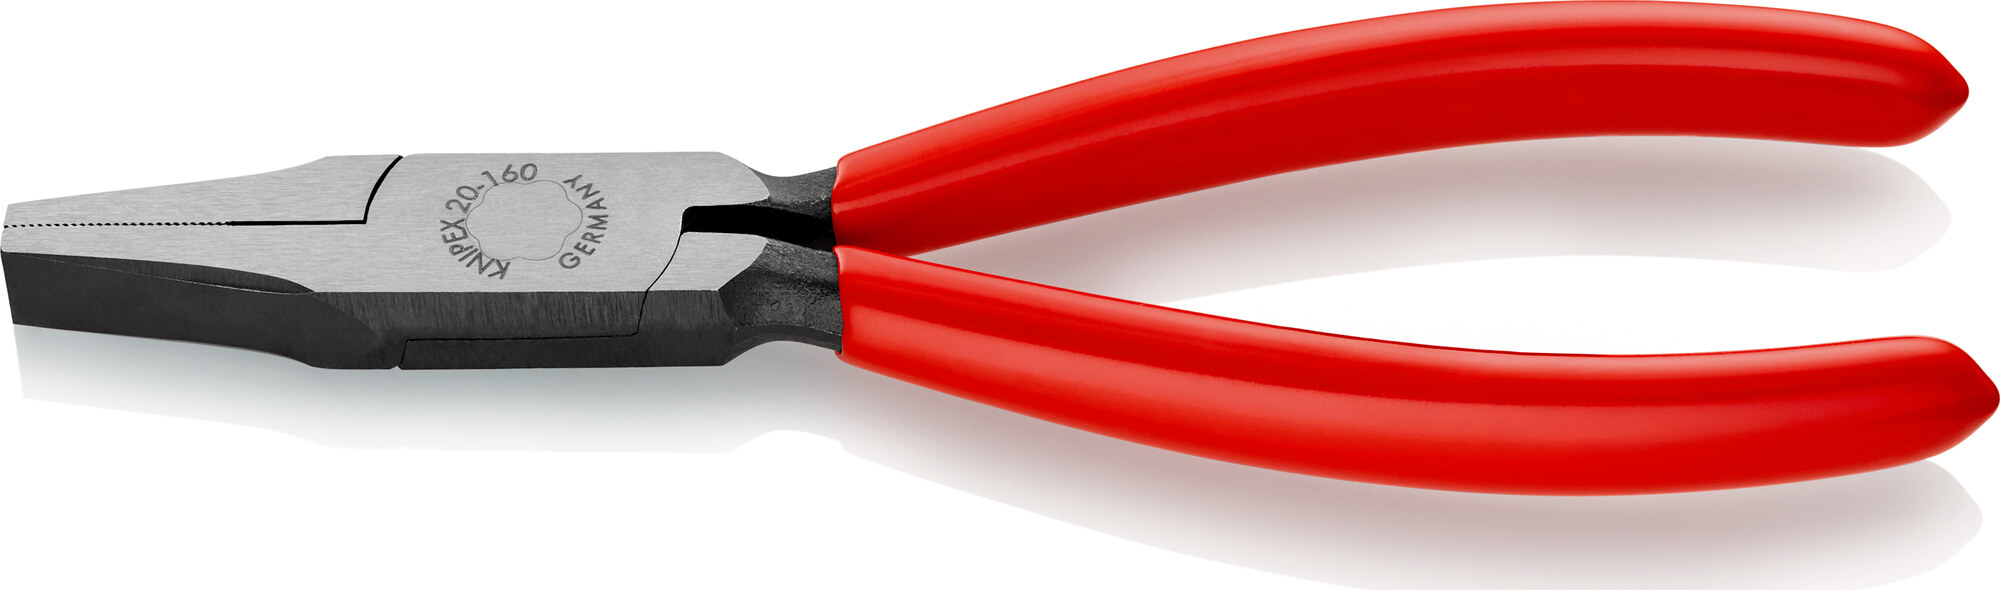 Knipex Alicates Knipex lateral 160/7001/